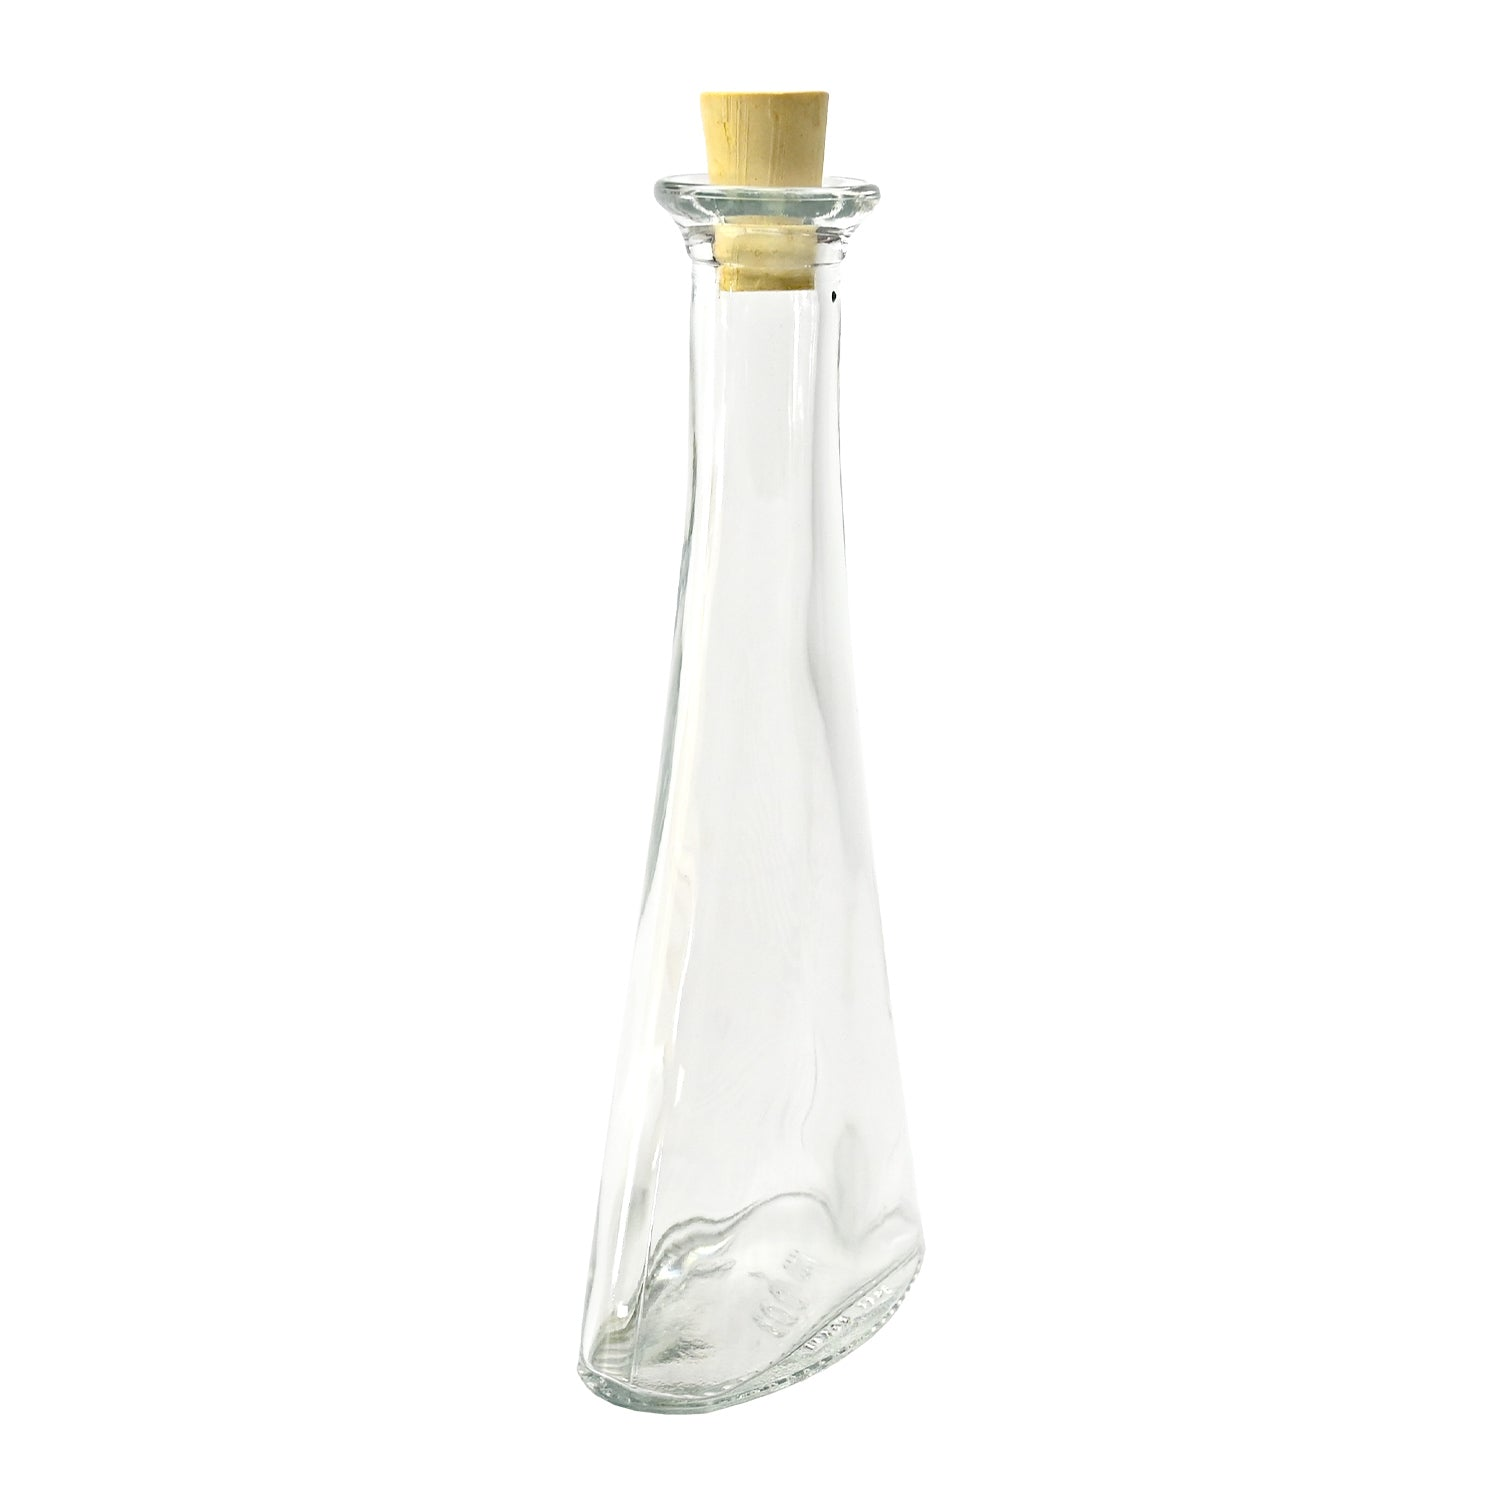 Bottle 6 Oval with Cork, 100ml